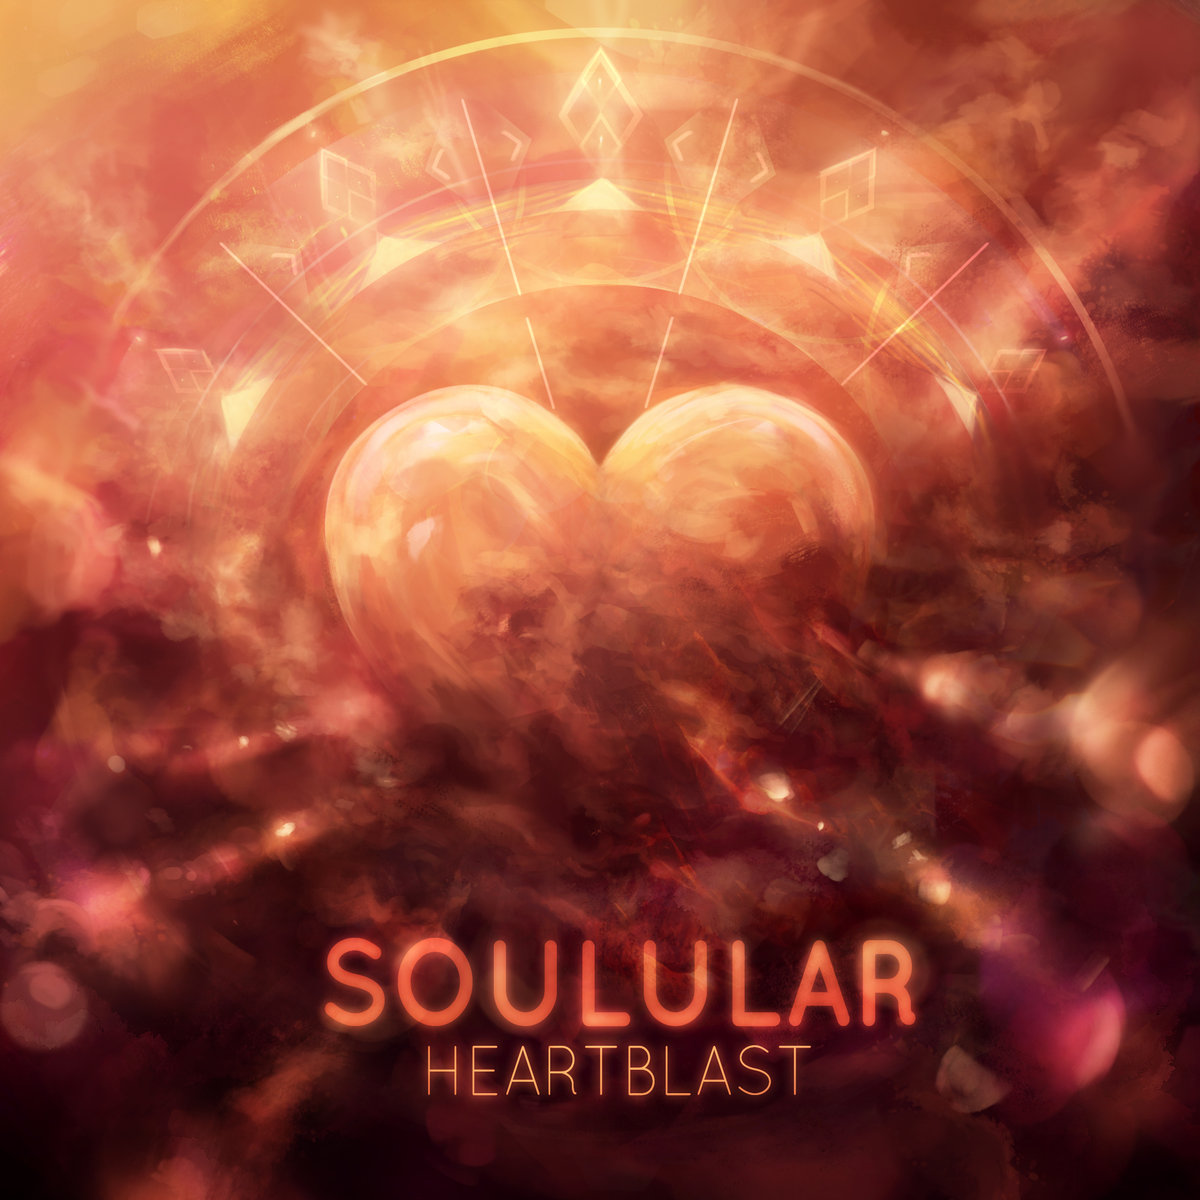 Soulular - Internal Galaxies @ 'Heartblast' album (Austin)